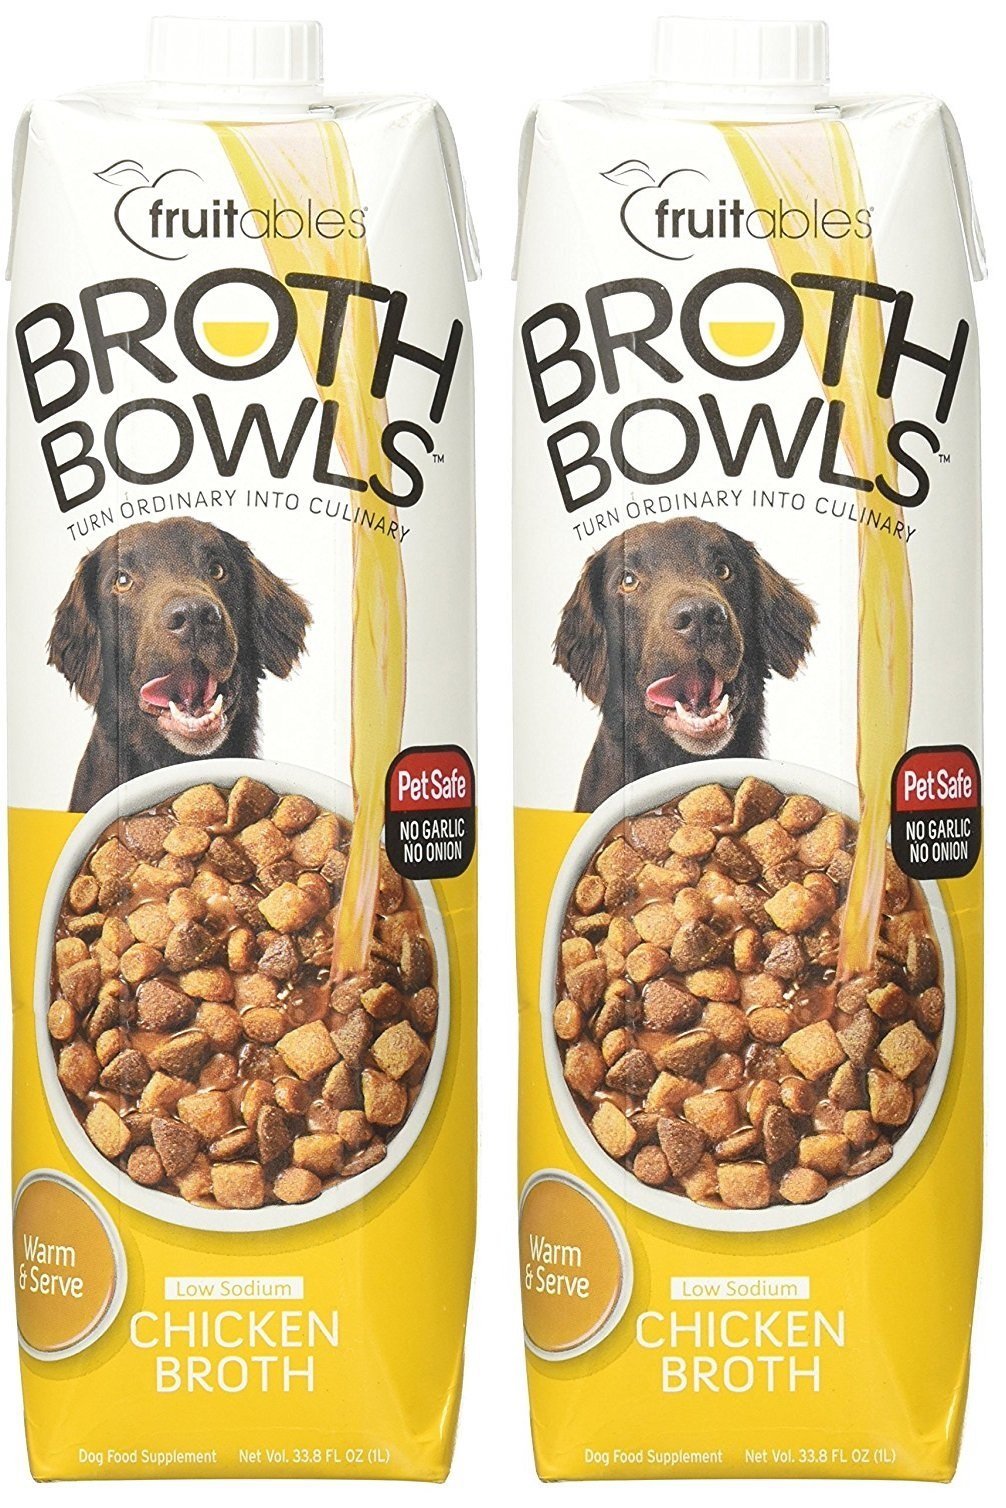 (2 Pack) Fruitables Broth Bowls Pet Safe Natural Chicken Food Topper Low Calorie Sodium by Fruitables